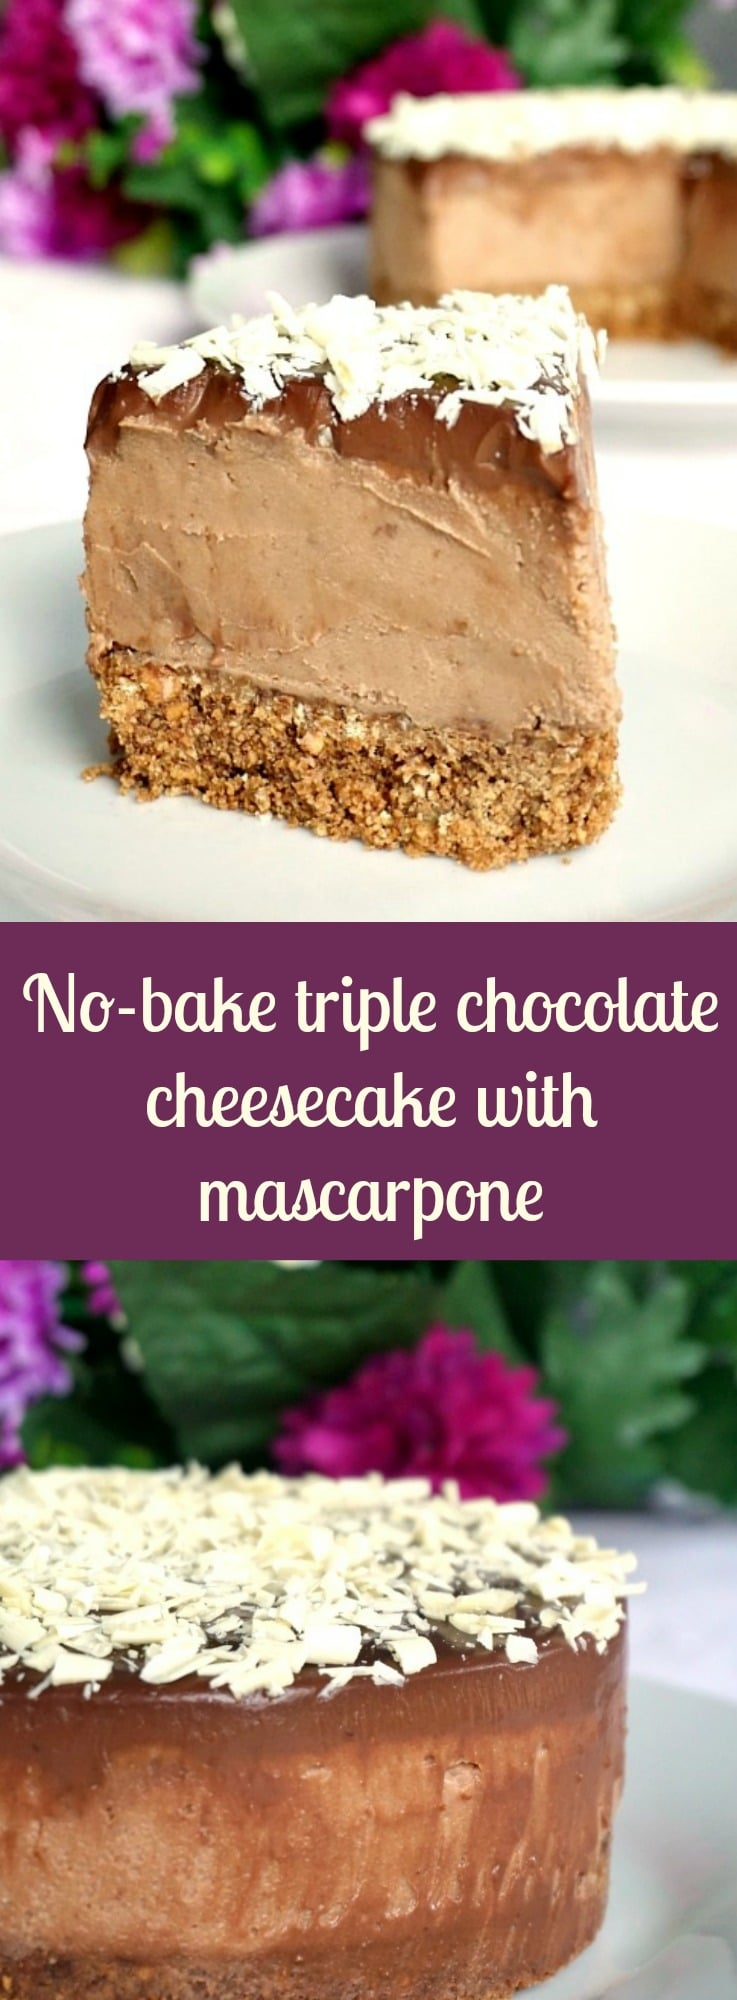 No-bake triple chocolate cheesecake recipe with mascarpone, the ideal dessert for Valentine's Day. So rich and velvety, the perfect way to say l love you!